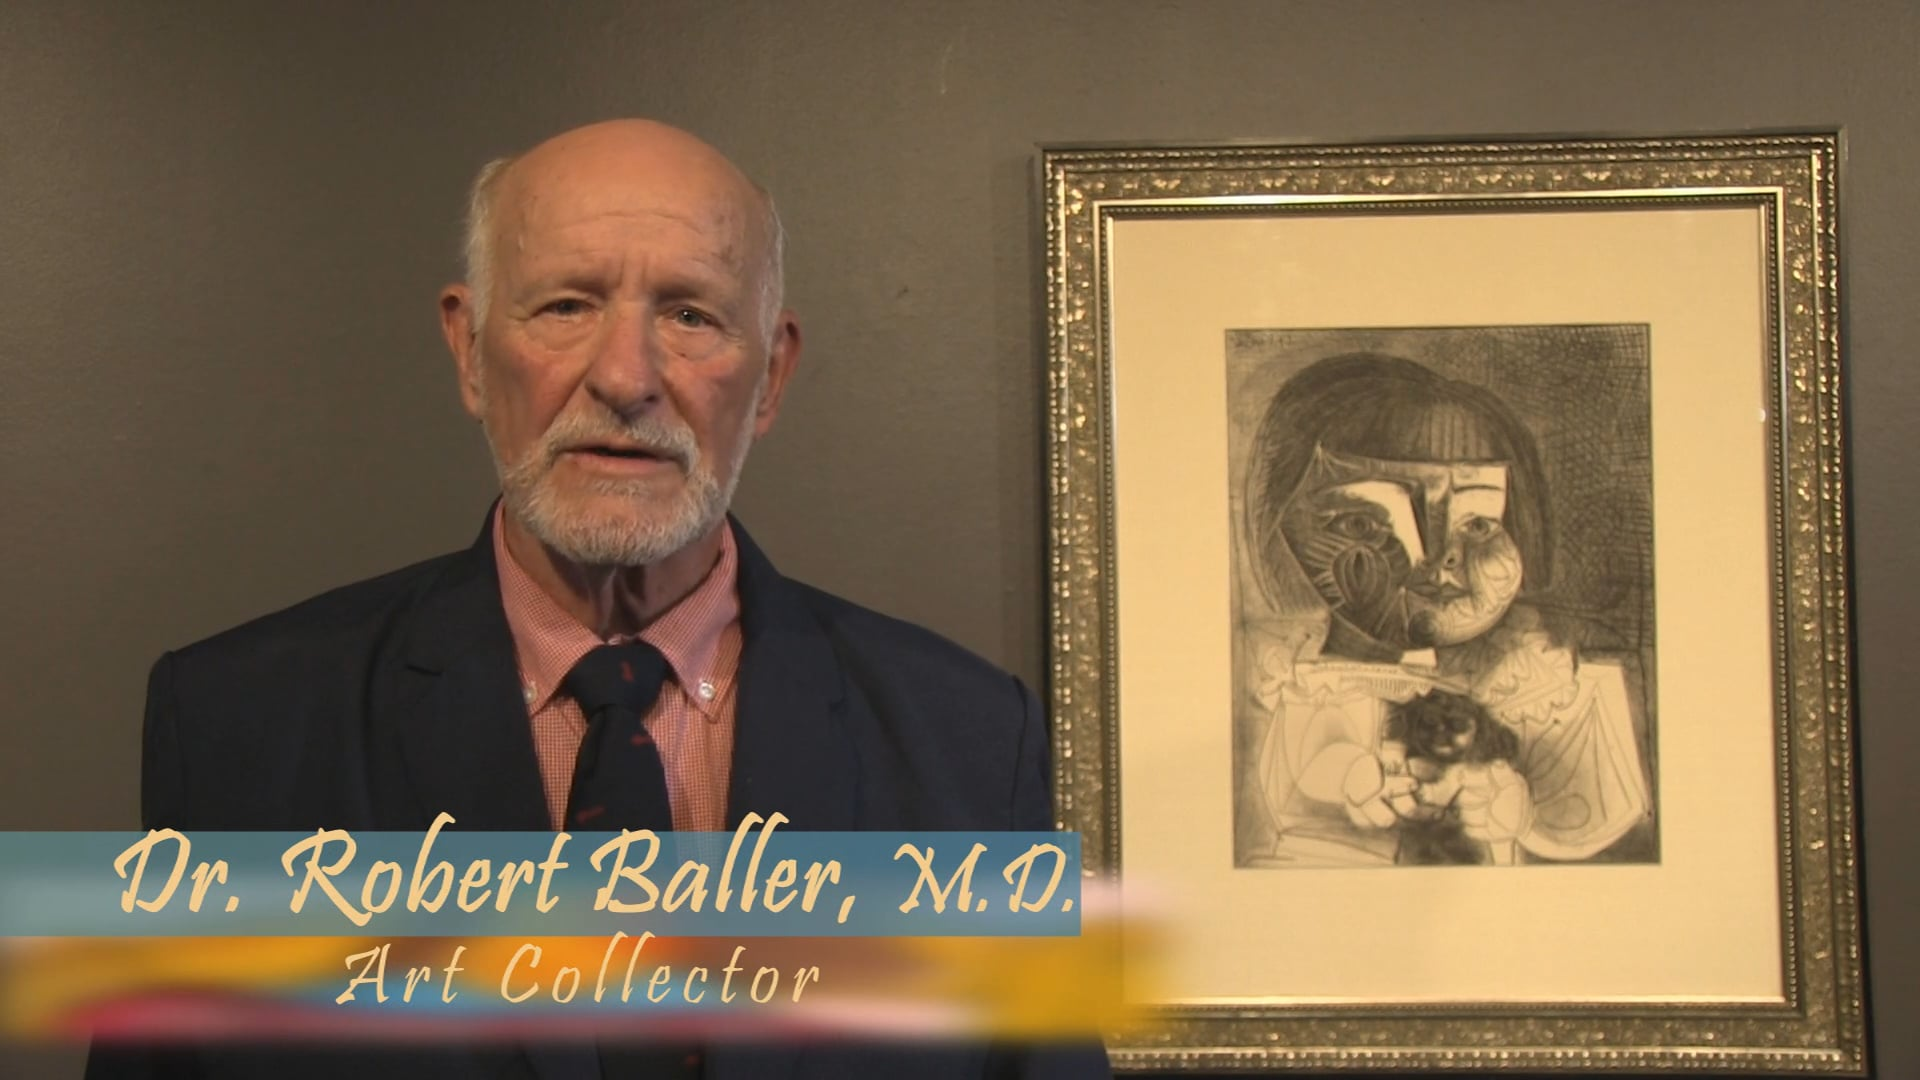 The Baller Art Collection: Dr. Baller's Heart and Mission